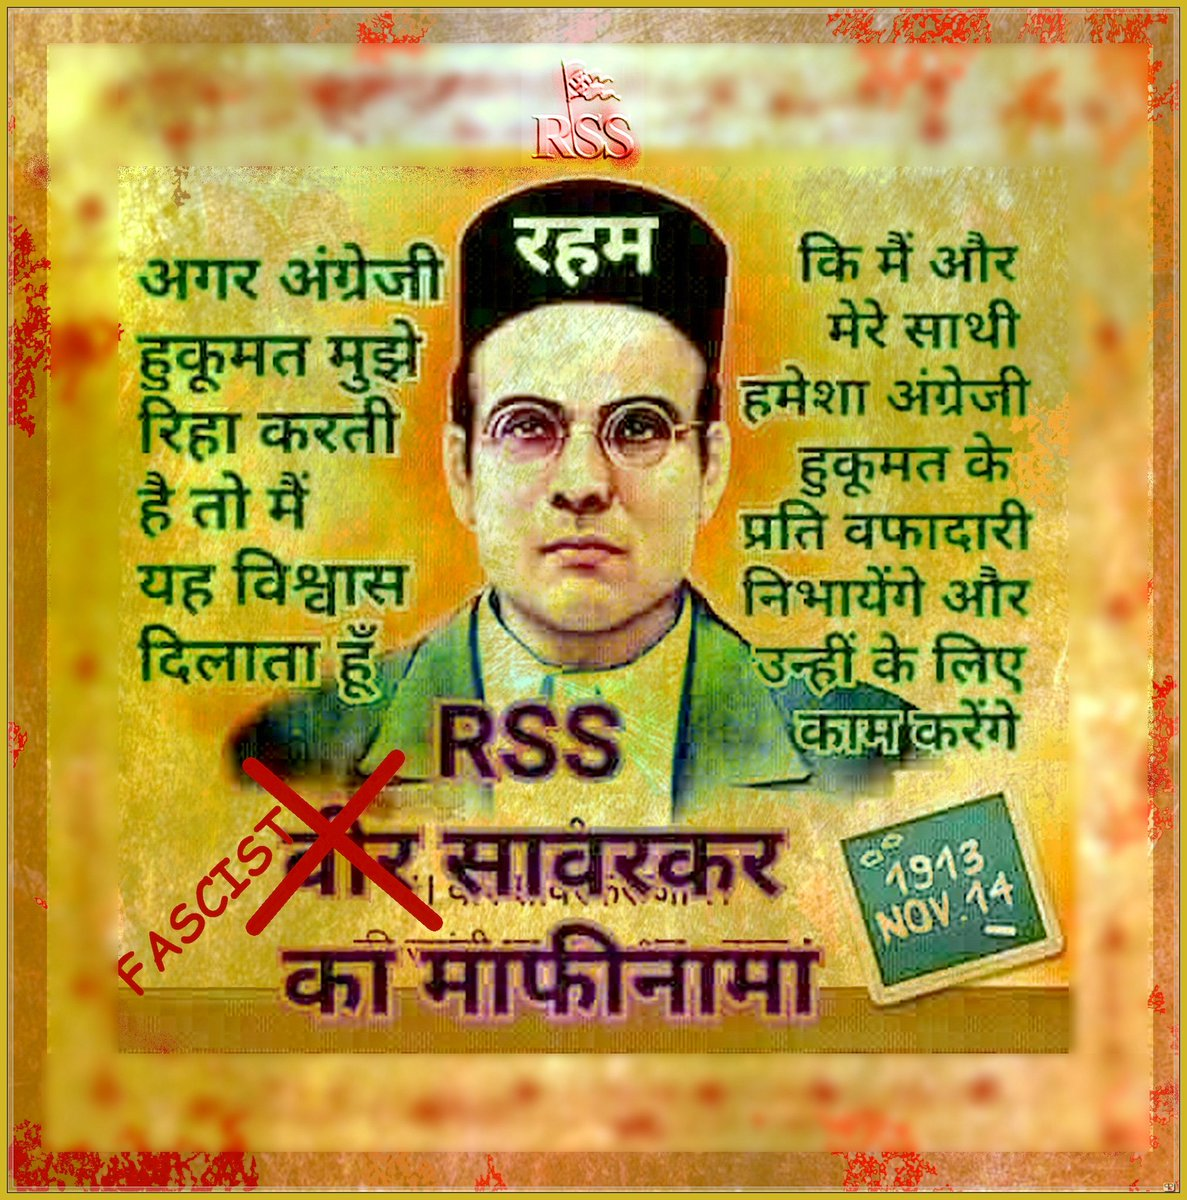 @BhavikaKapoor5 Bull shit @Dev_Fadnavis  ( cannot say cowshit or cowdung as this would be a Grave insult to the Cows) Everyone in the @RSSorg including yourself are Traitors of India and Humanity)  #3T's  #Treason #Treachery #Traitory